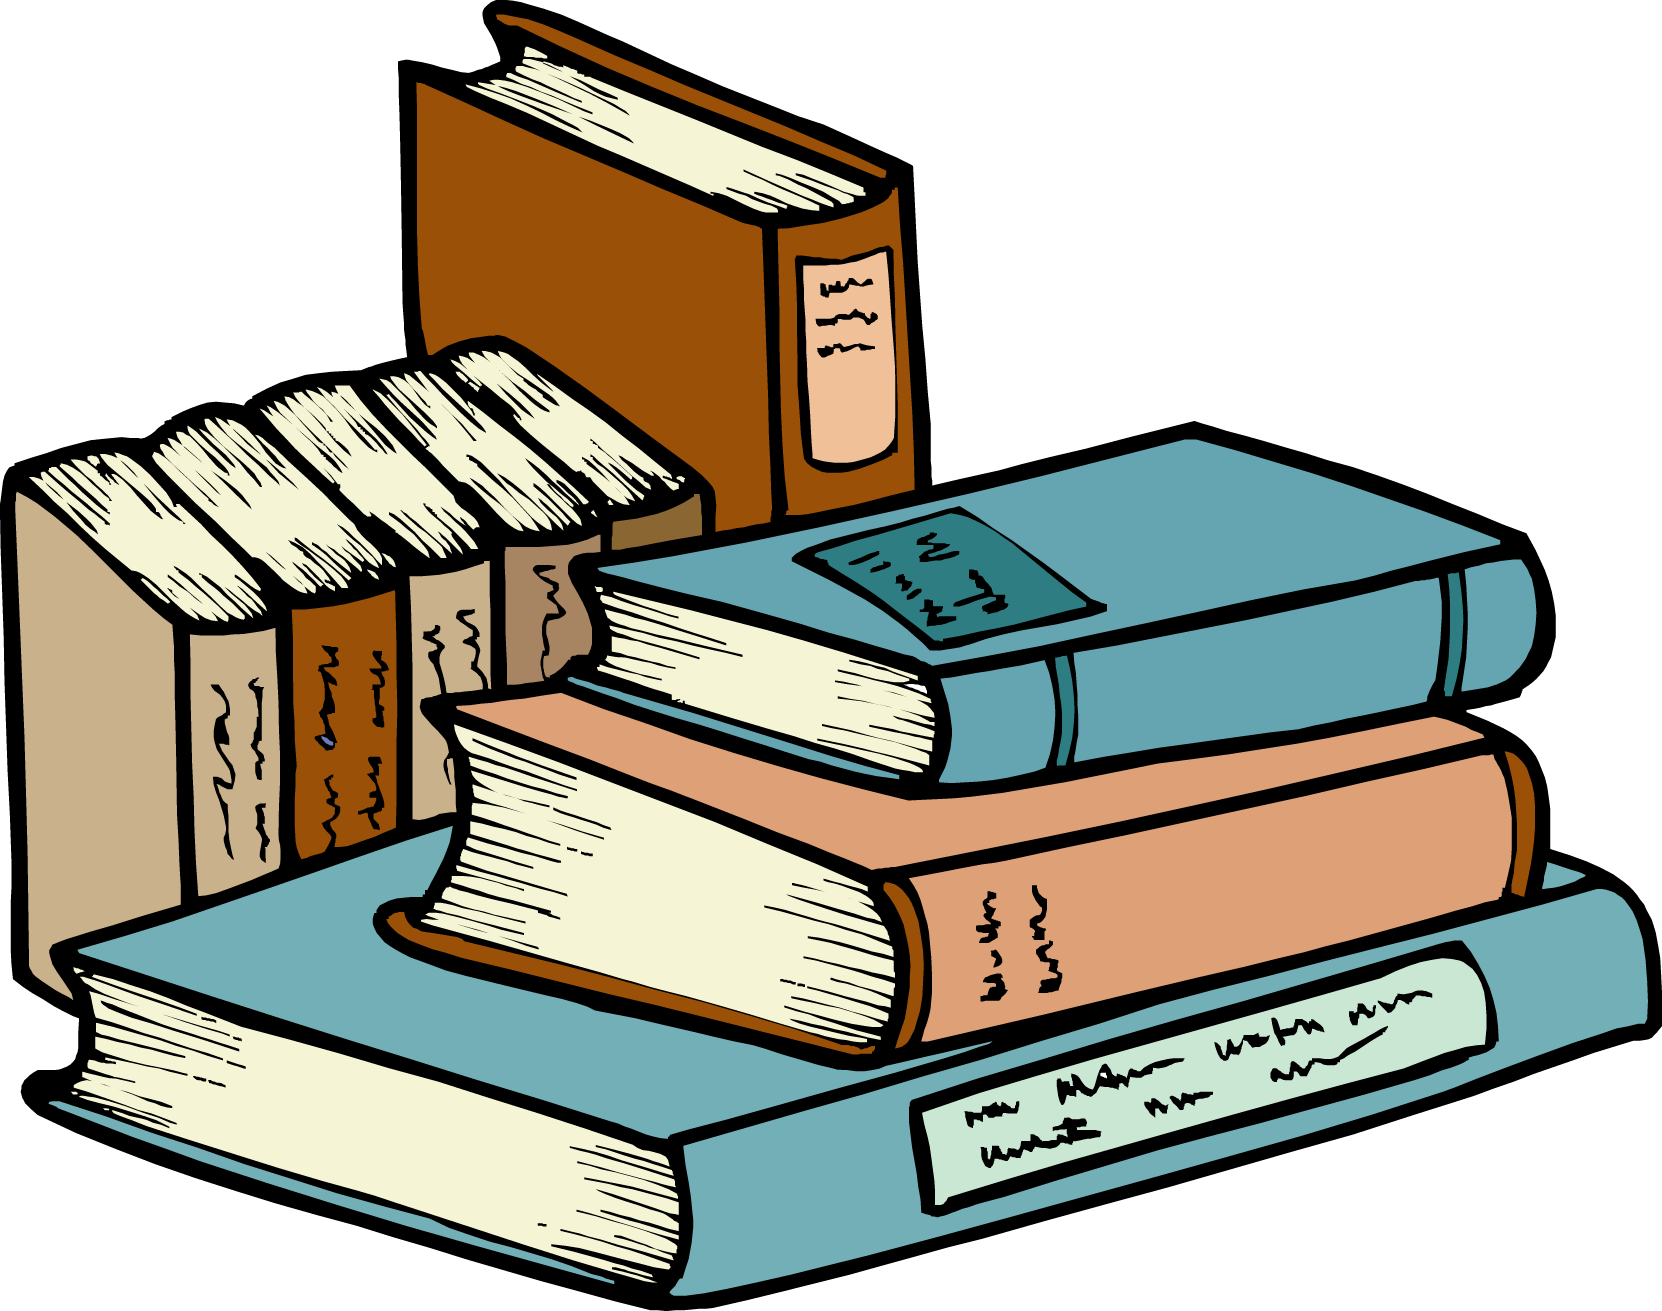 Stack clipart library book. Our collection west hempstead